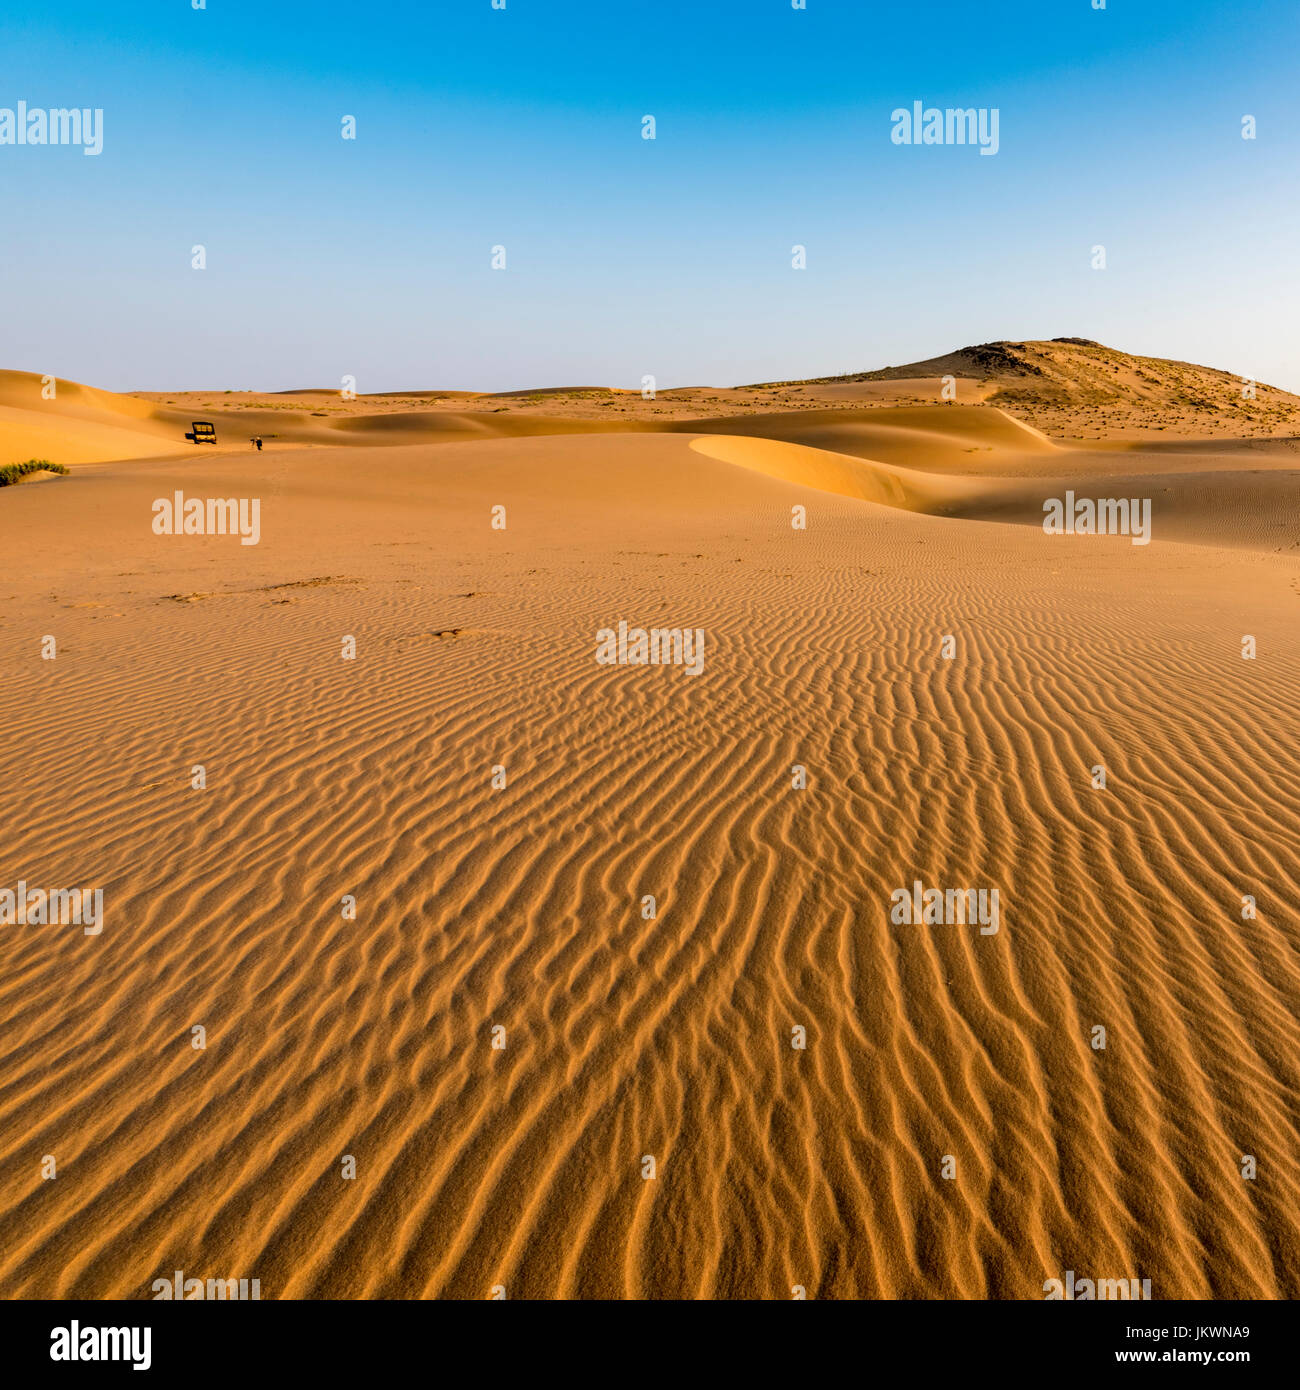 Sand Dunes in early morning light près de Serra Cafema Camp en Namibie. Photo Stock